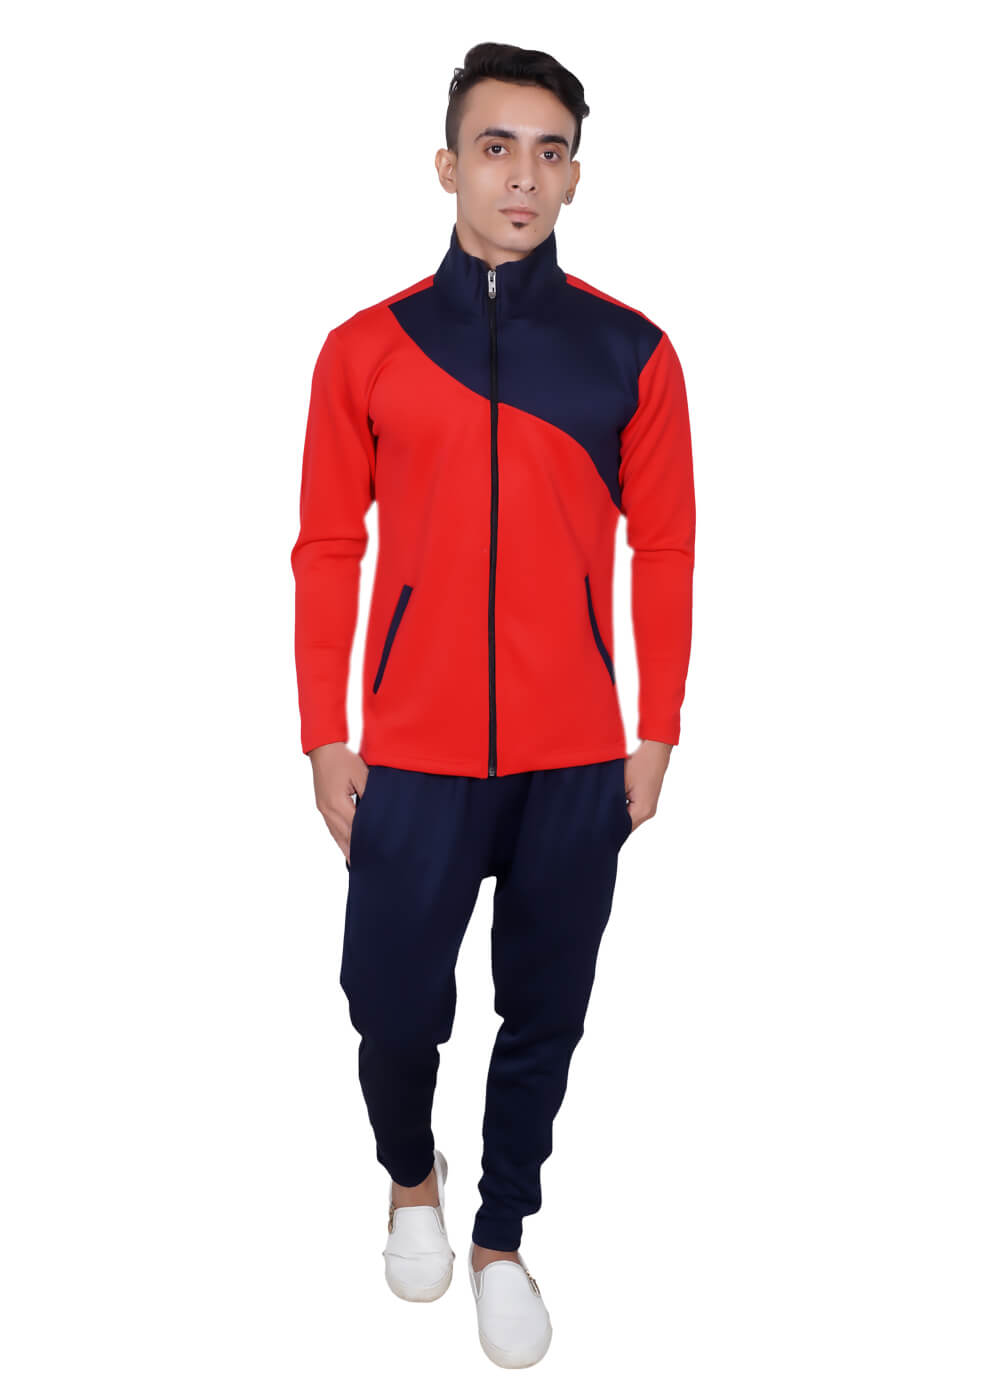 Cheap Tracksuits Manufacturers in Mysore